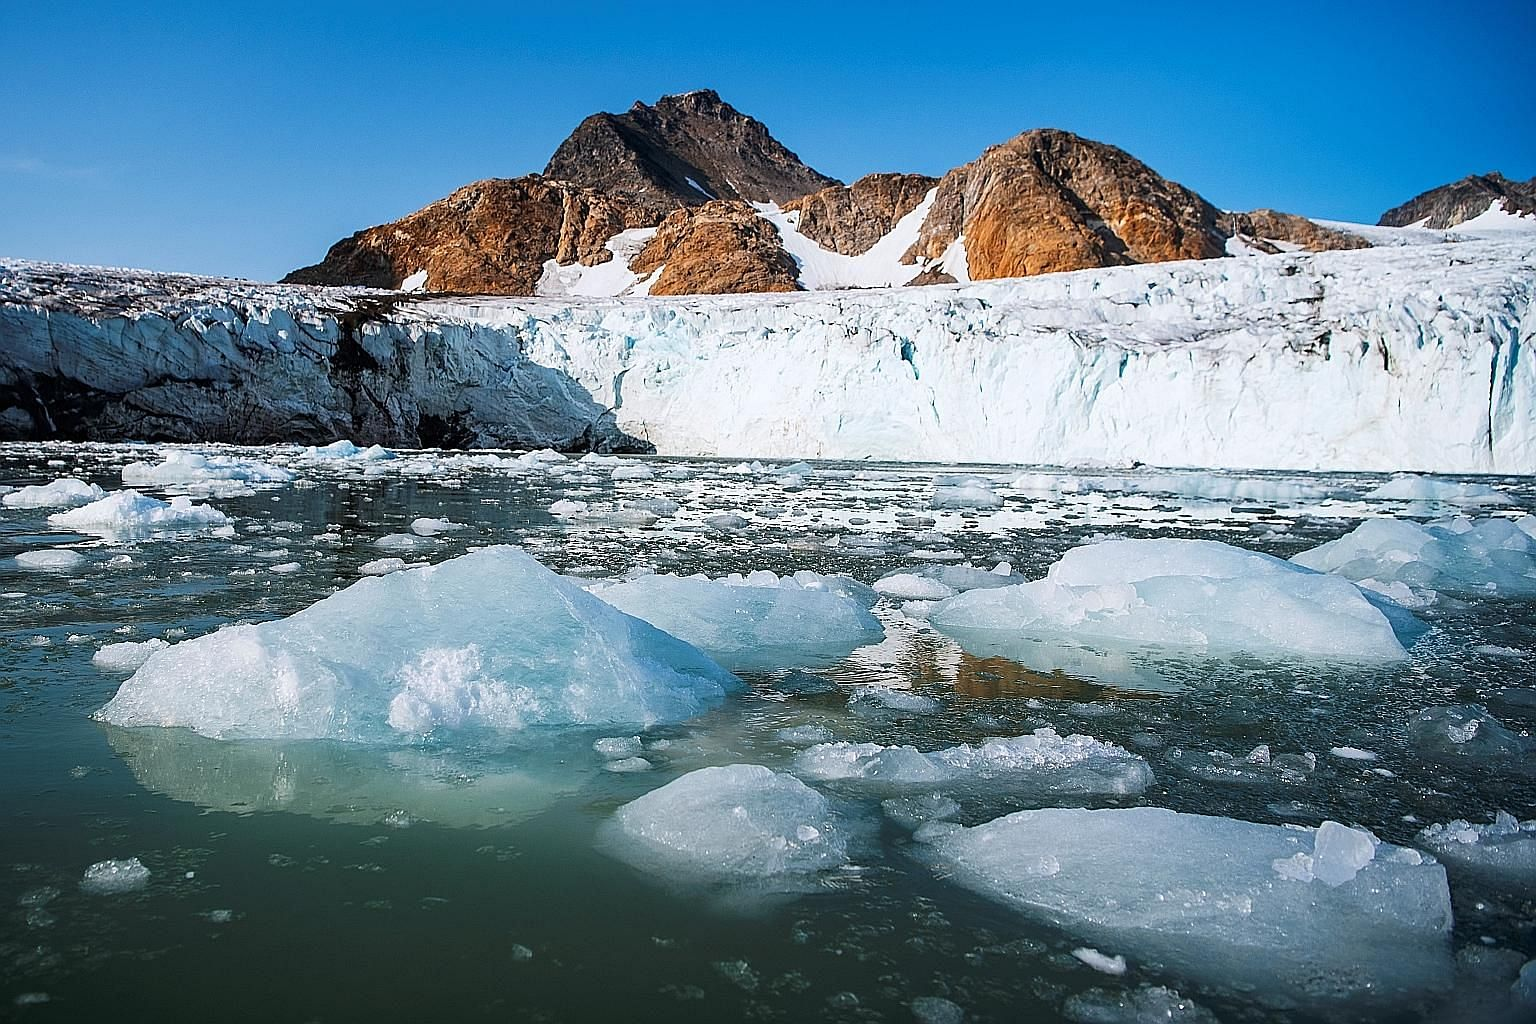 The Apusiajik glacier on the south-eastern shore of Greenland. The rapid melting of the Greenland ice sheet has been dumping huge amounts of freshwater into the far North Atlantic, reducing the amount of cold, salty water sinking to the depths, there